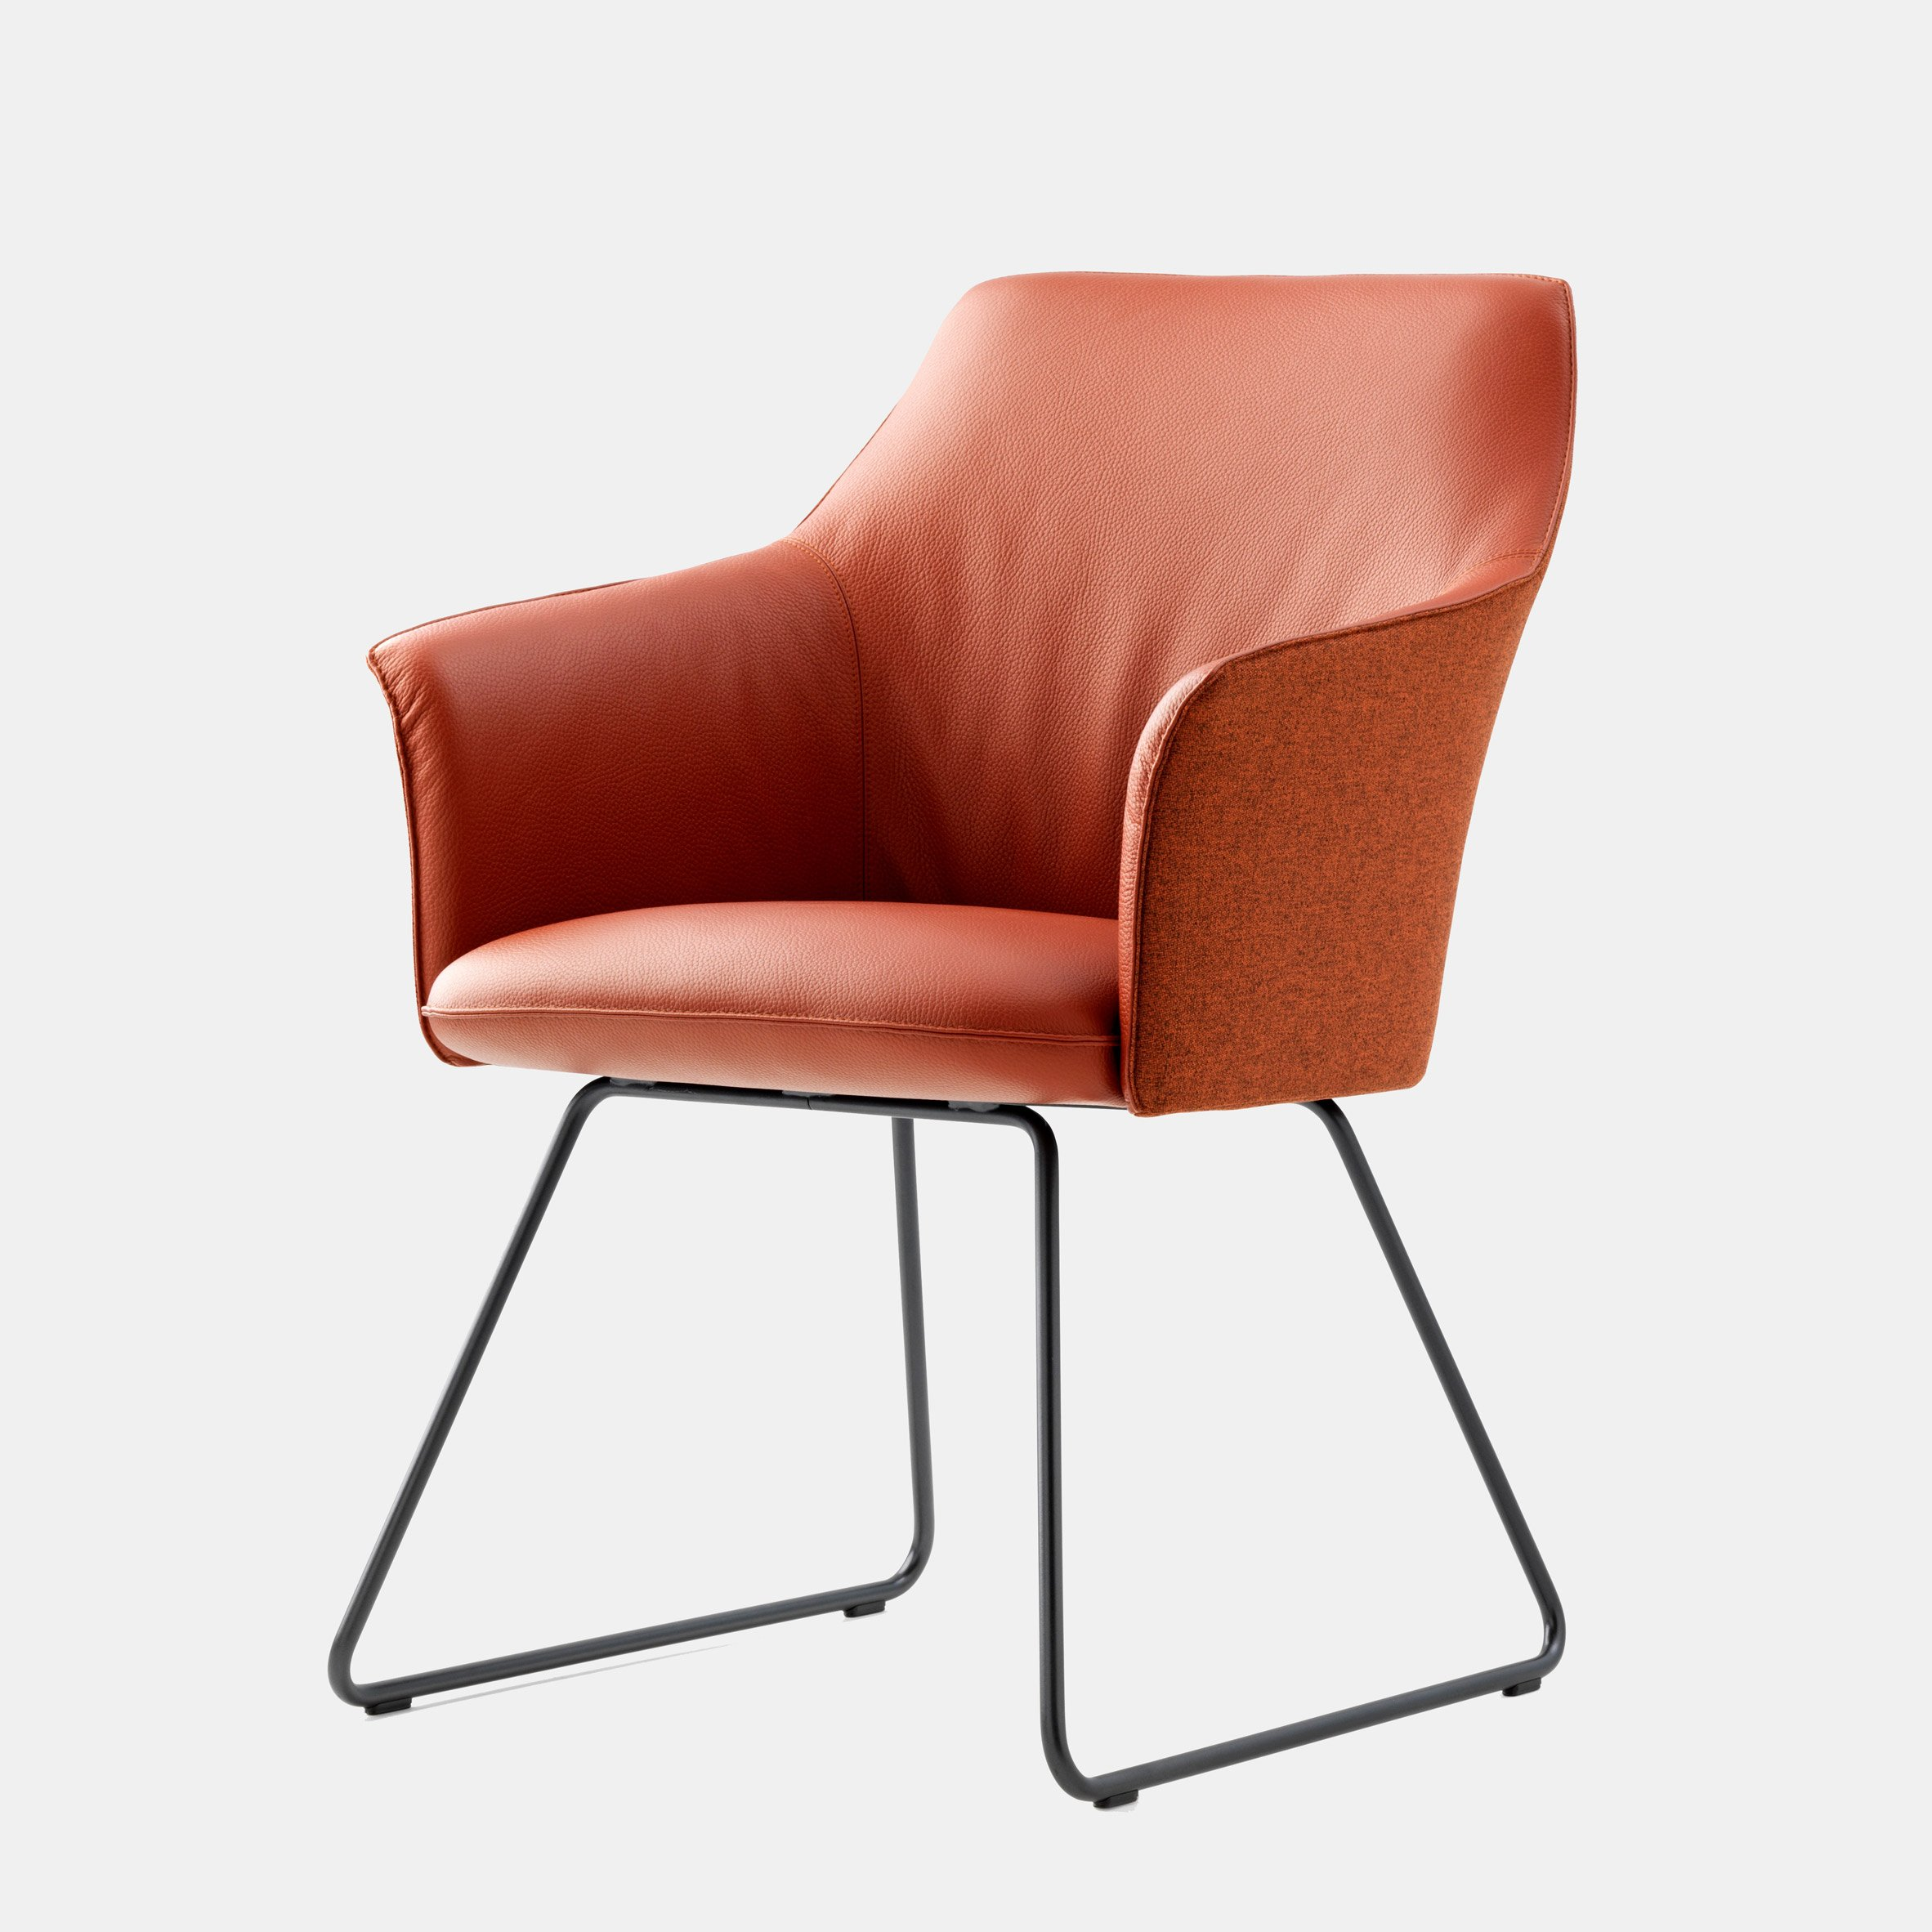 LX671 chair by Christian Werner for Leolux LX